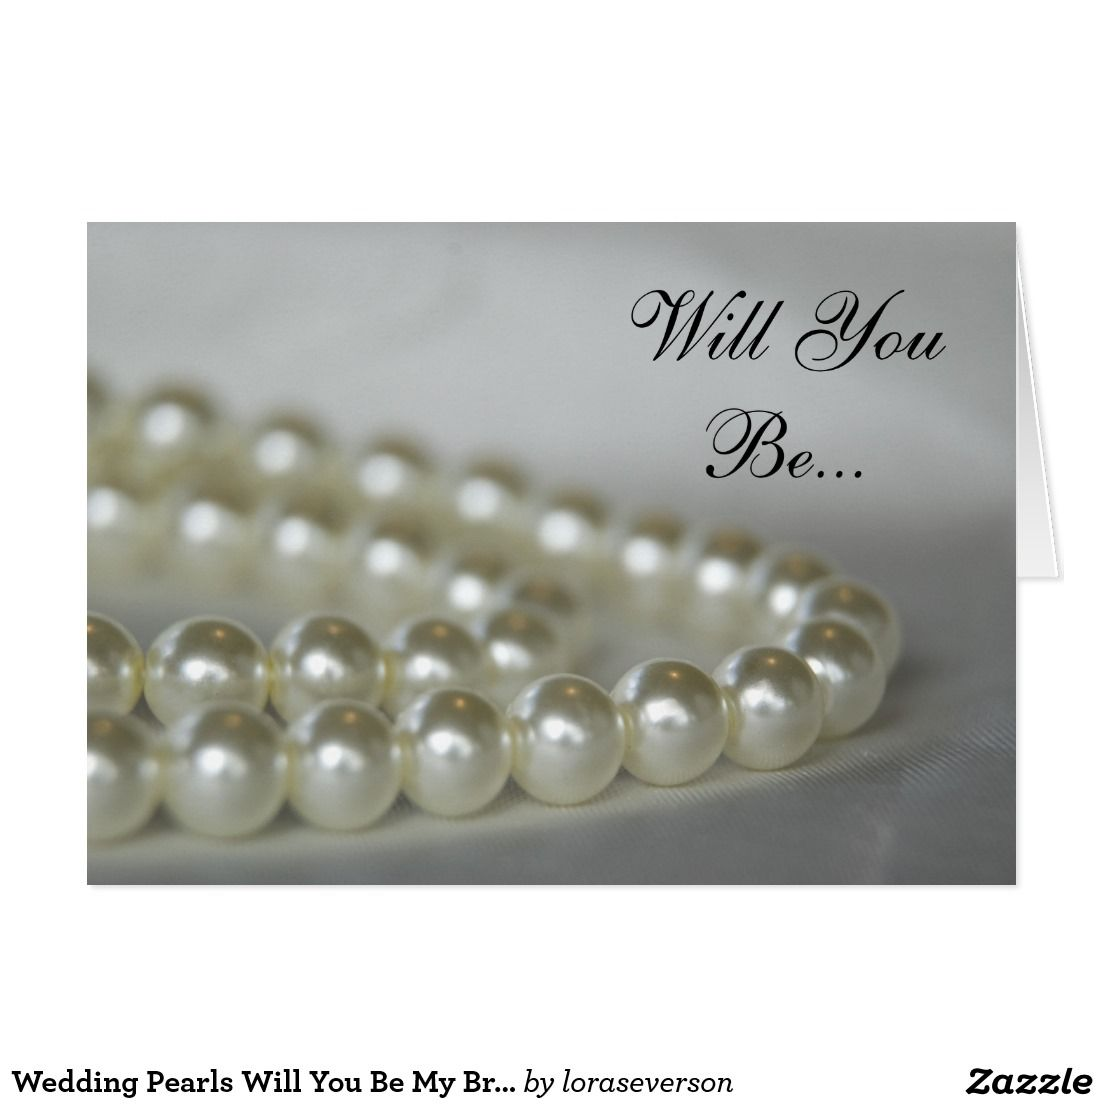 how early should you send out wedding shower invitations%0A Wedding Pearls Will You Be My Bridesmaid